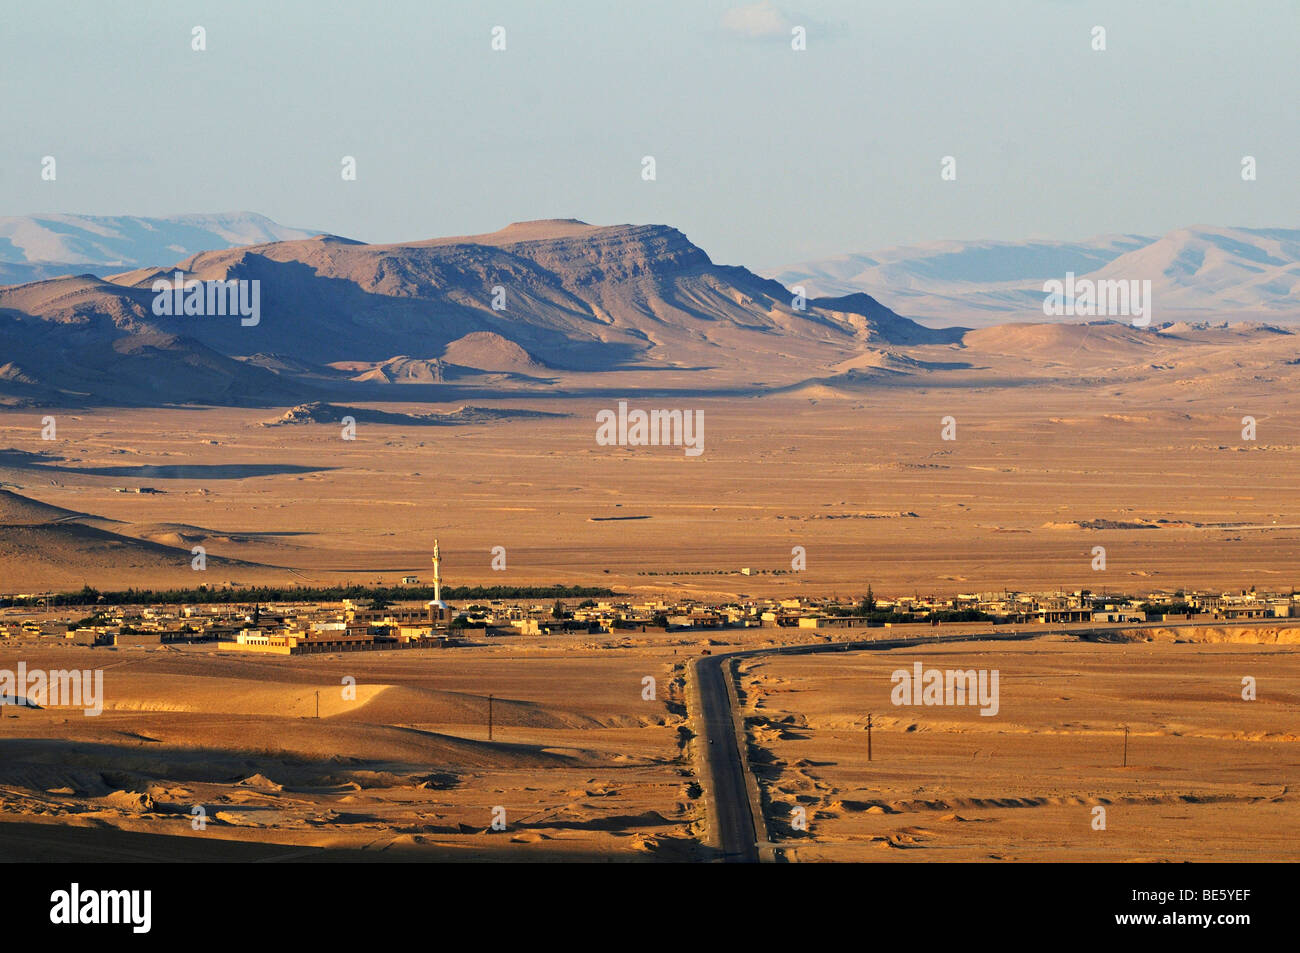 View from the castle Qala'at Ibn Ma'n on the desert near Palmyra, Tadmur, Syria, Asia - Stock Image